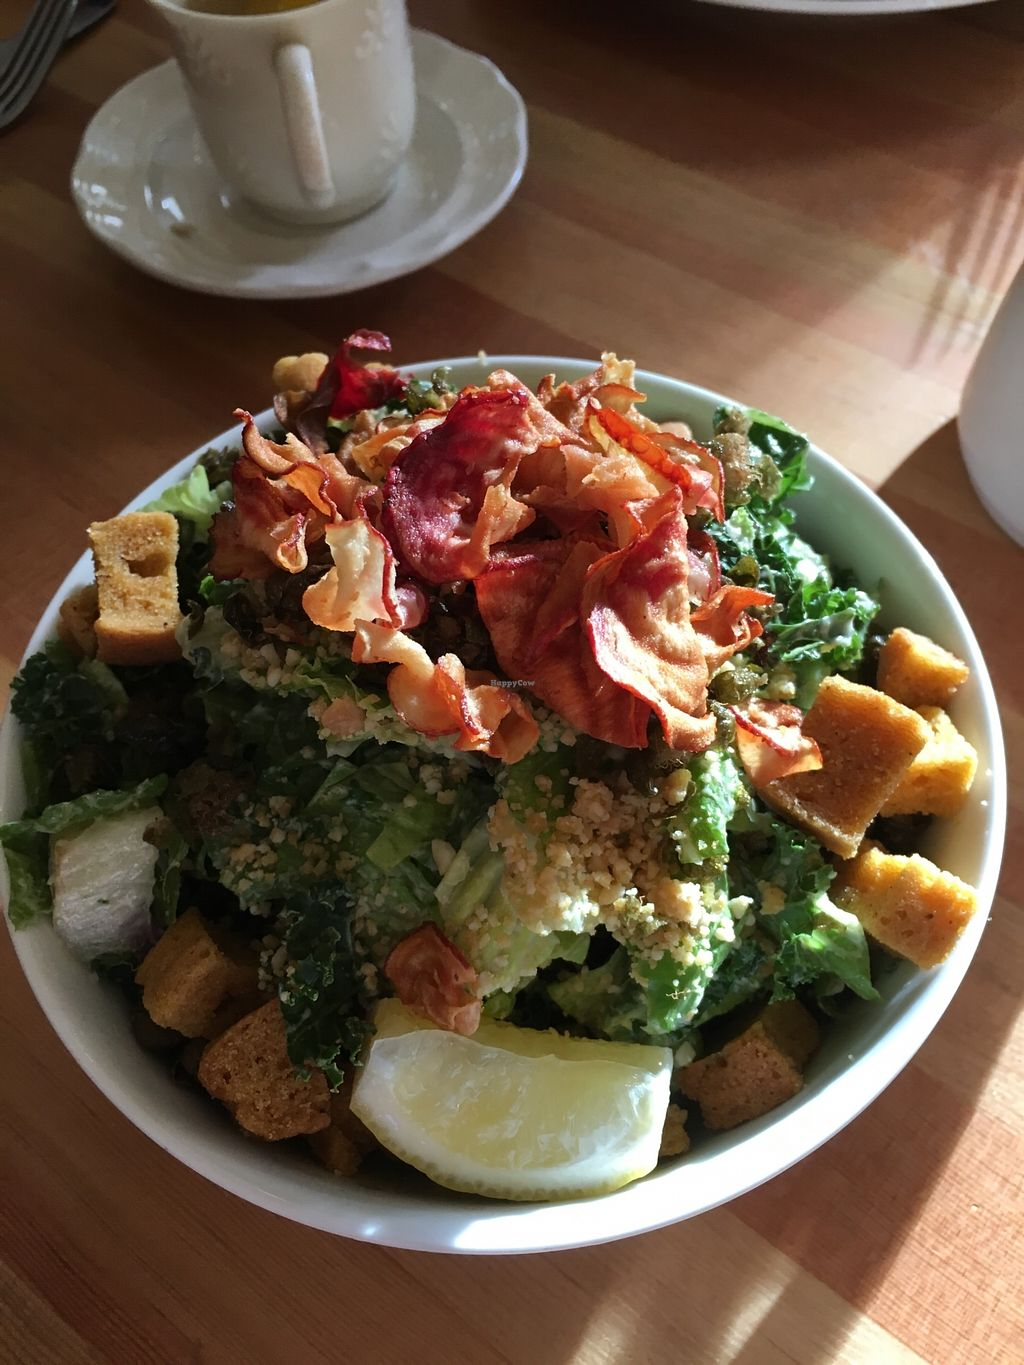 """Photo of Heirloom Vegetarian  by <a href=""""/members/profile/vegan%20frog"""">vegan frog</a> <br/>Caesar salad (small) <br/> December 26, 2017  - <a href='/contact/abuse/image/34325/339099'>Report</a>"""